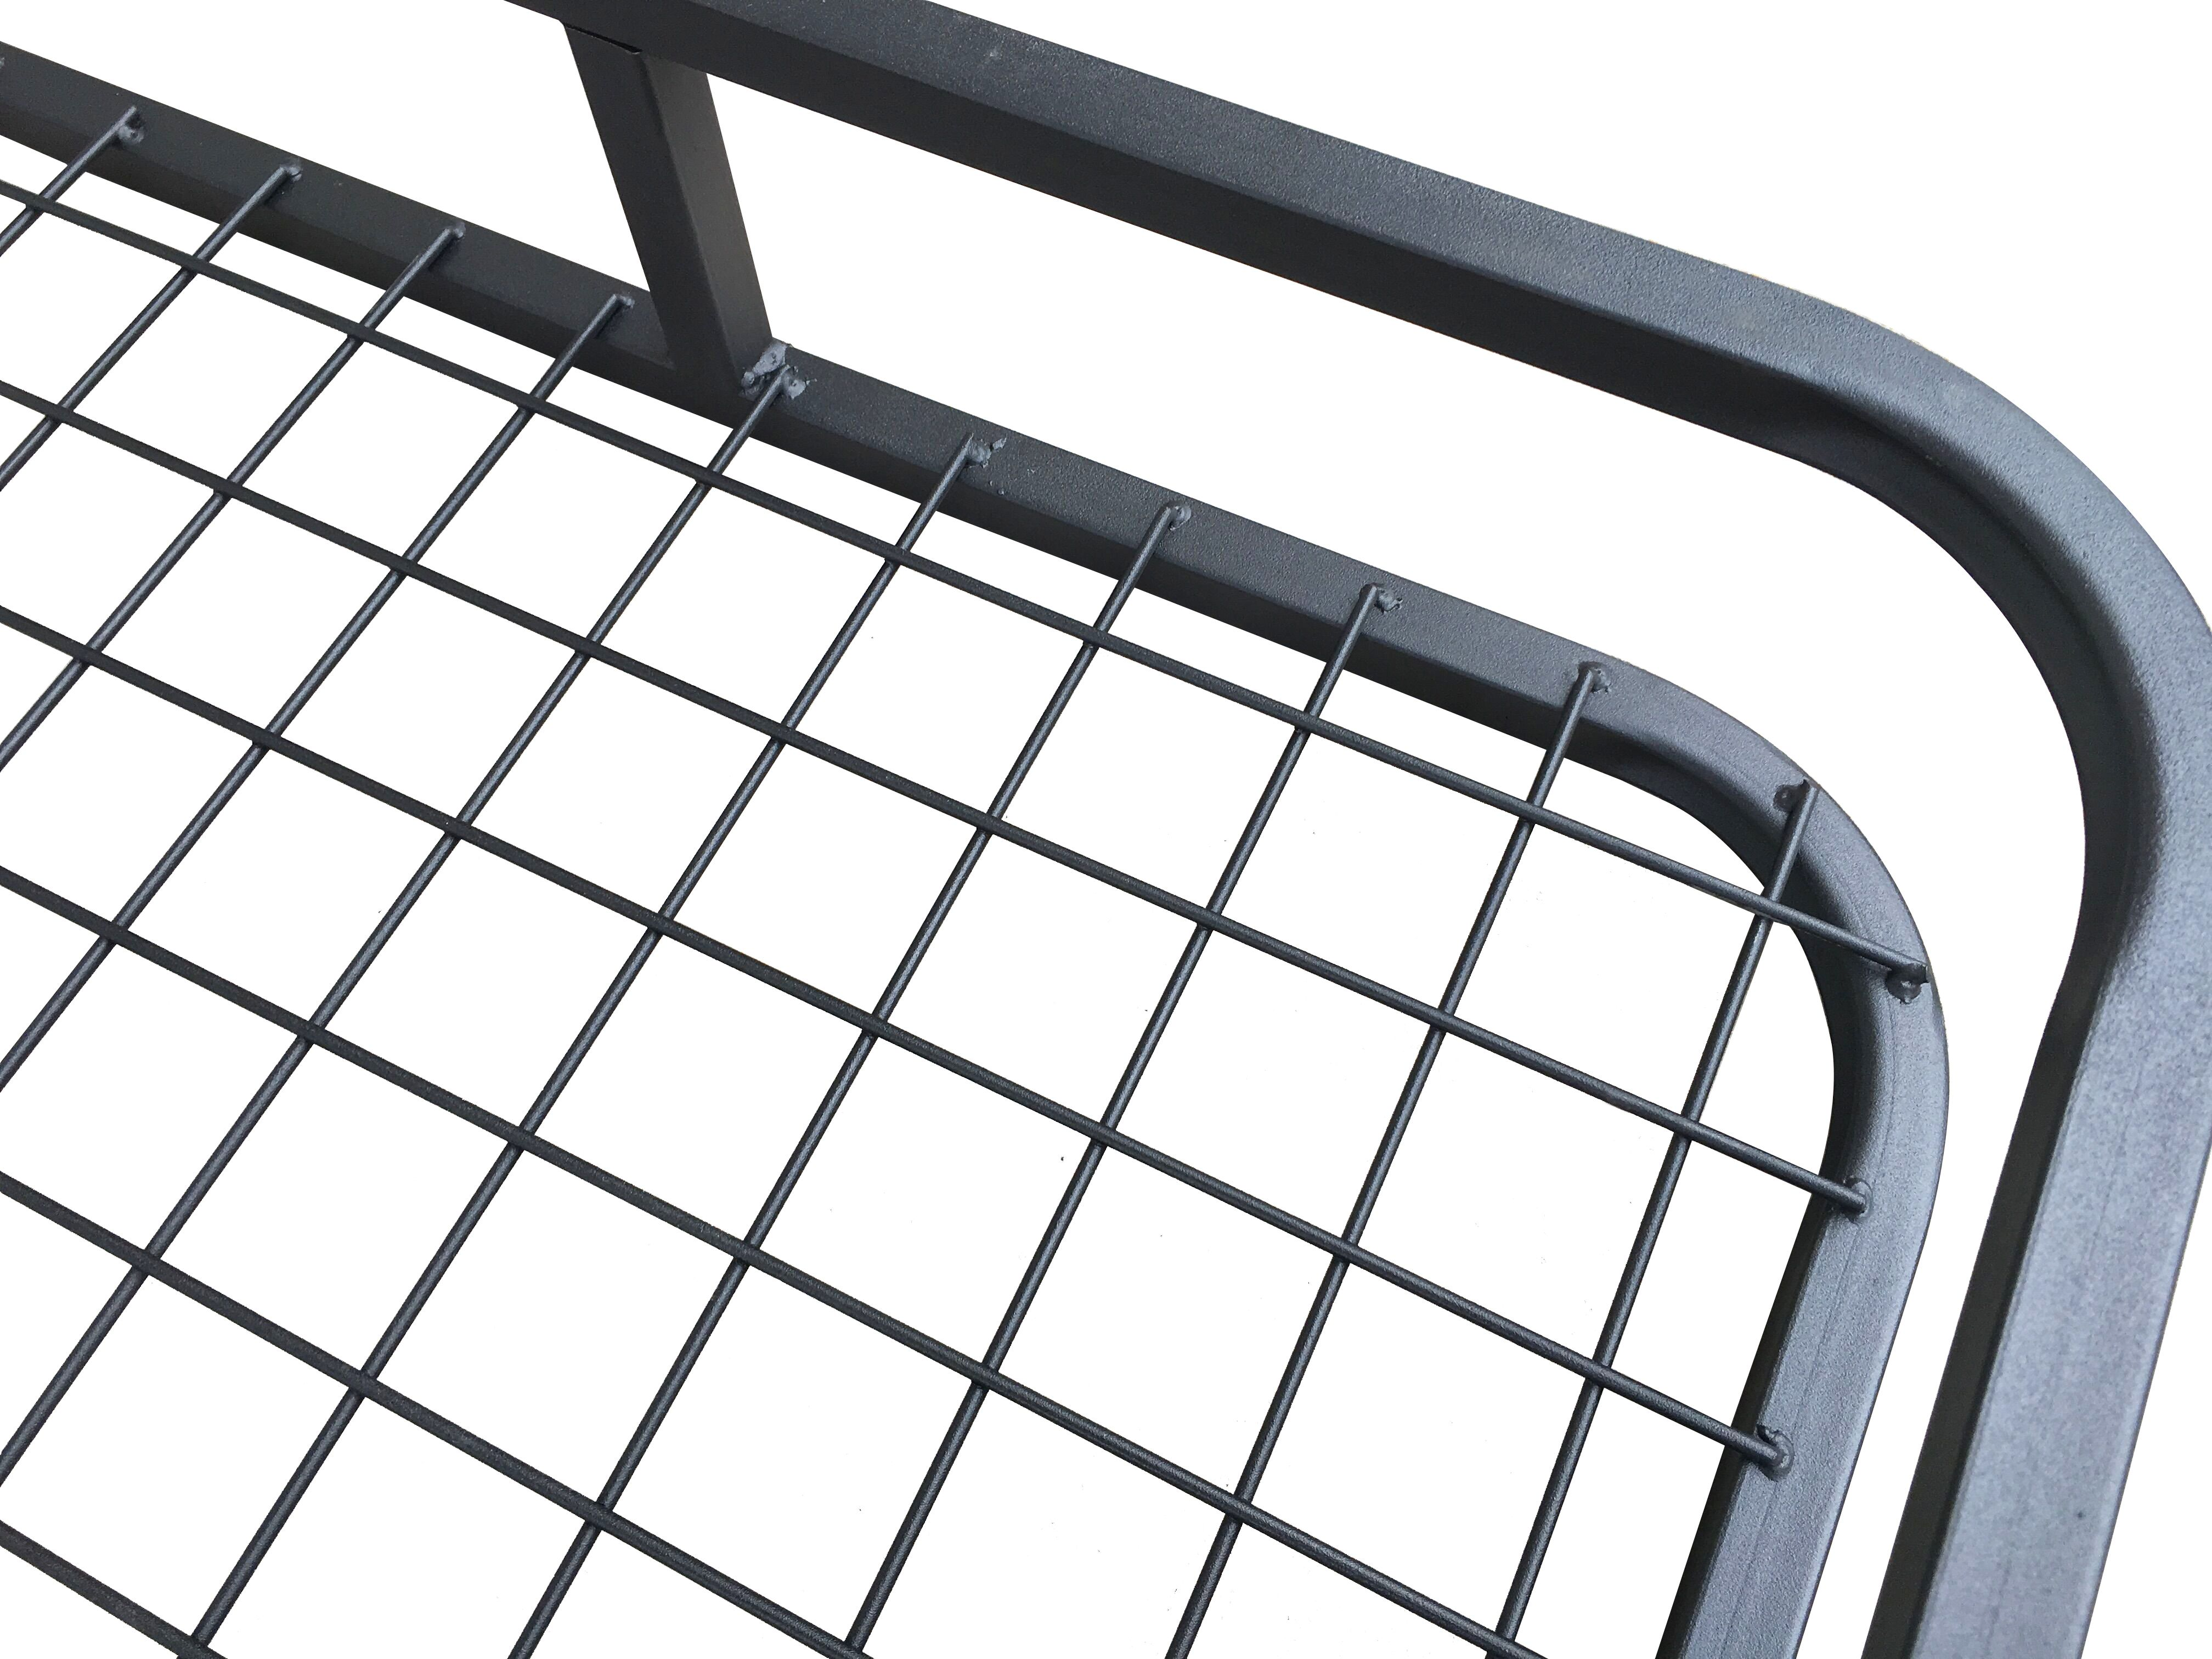 Universal Roof Rack Basket – Car Luggage Carrier Steel Cage Vehicle Cargo 5